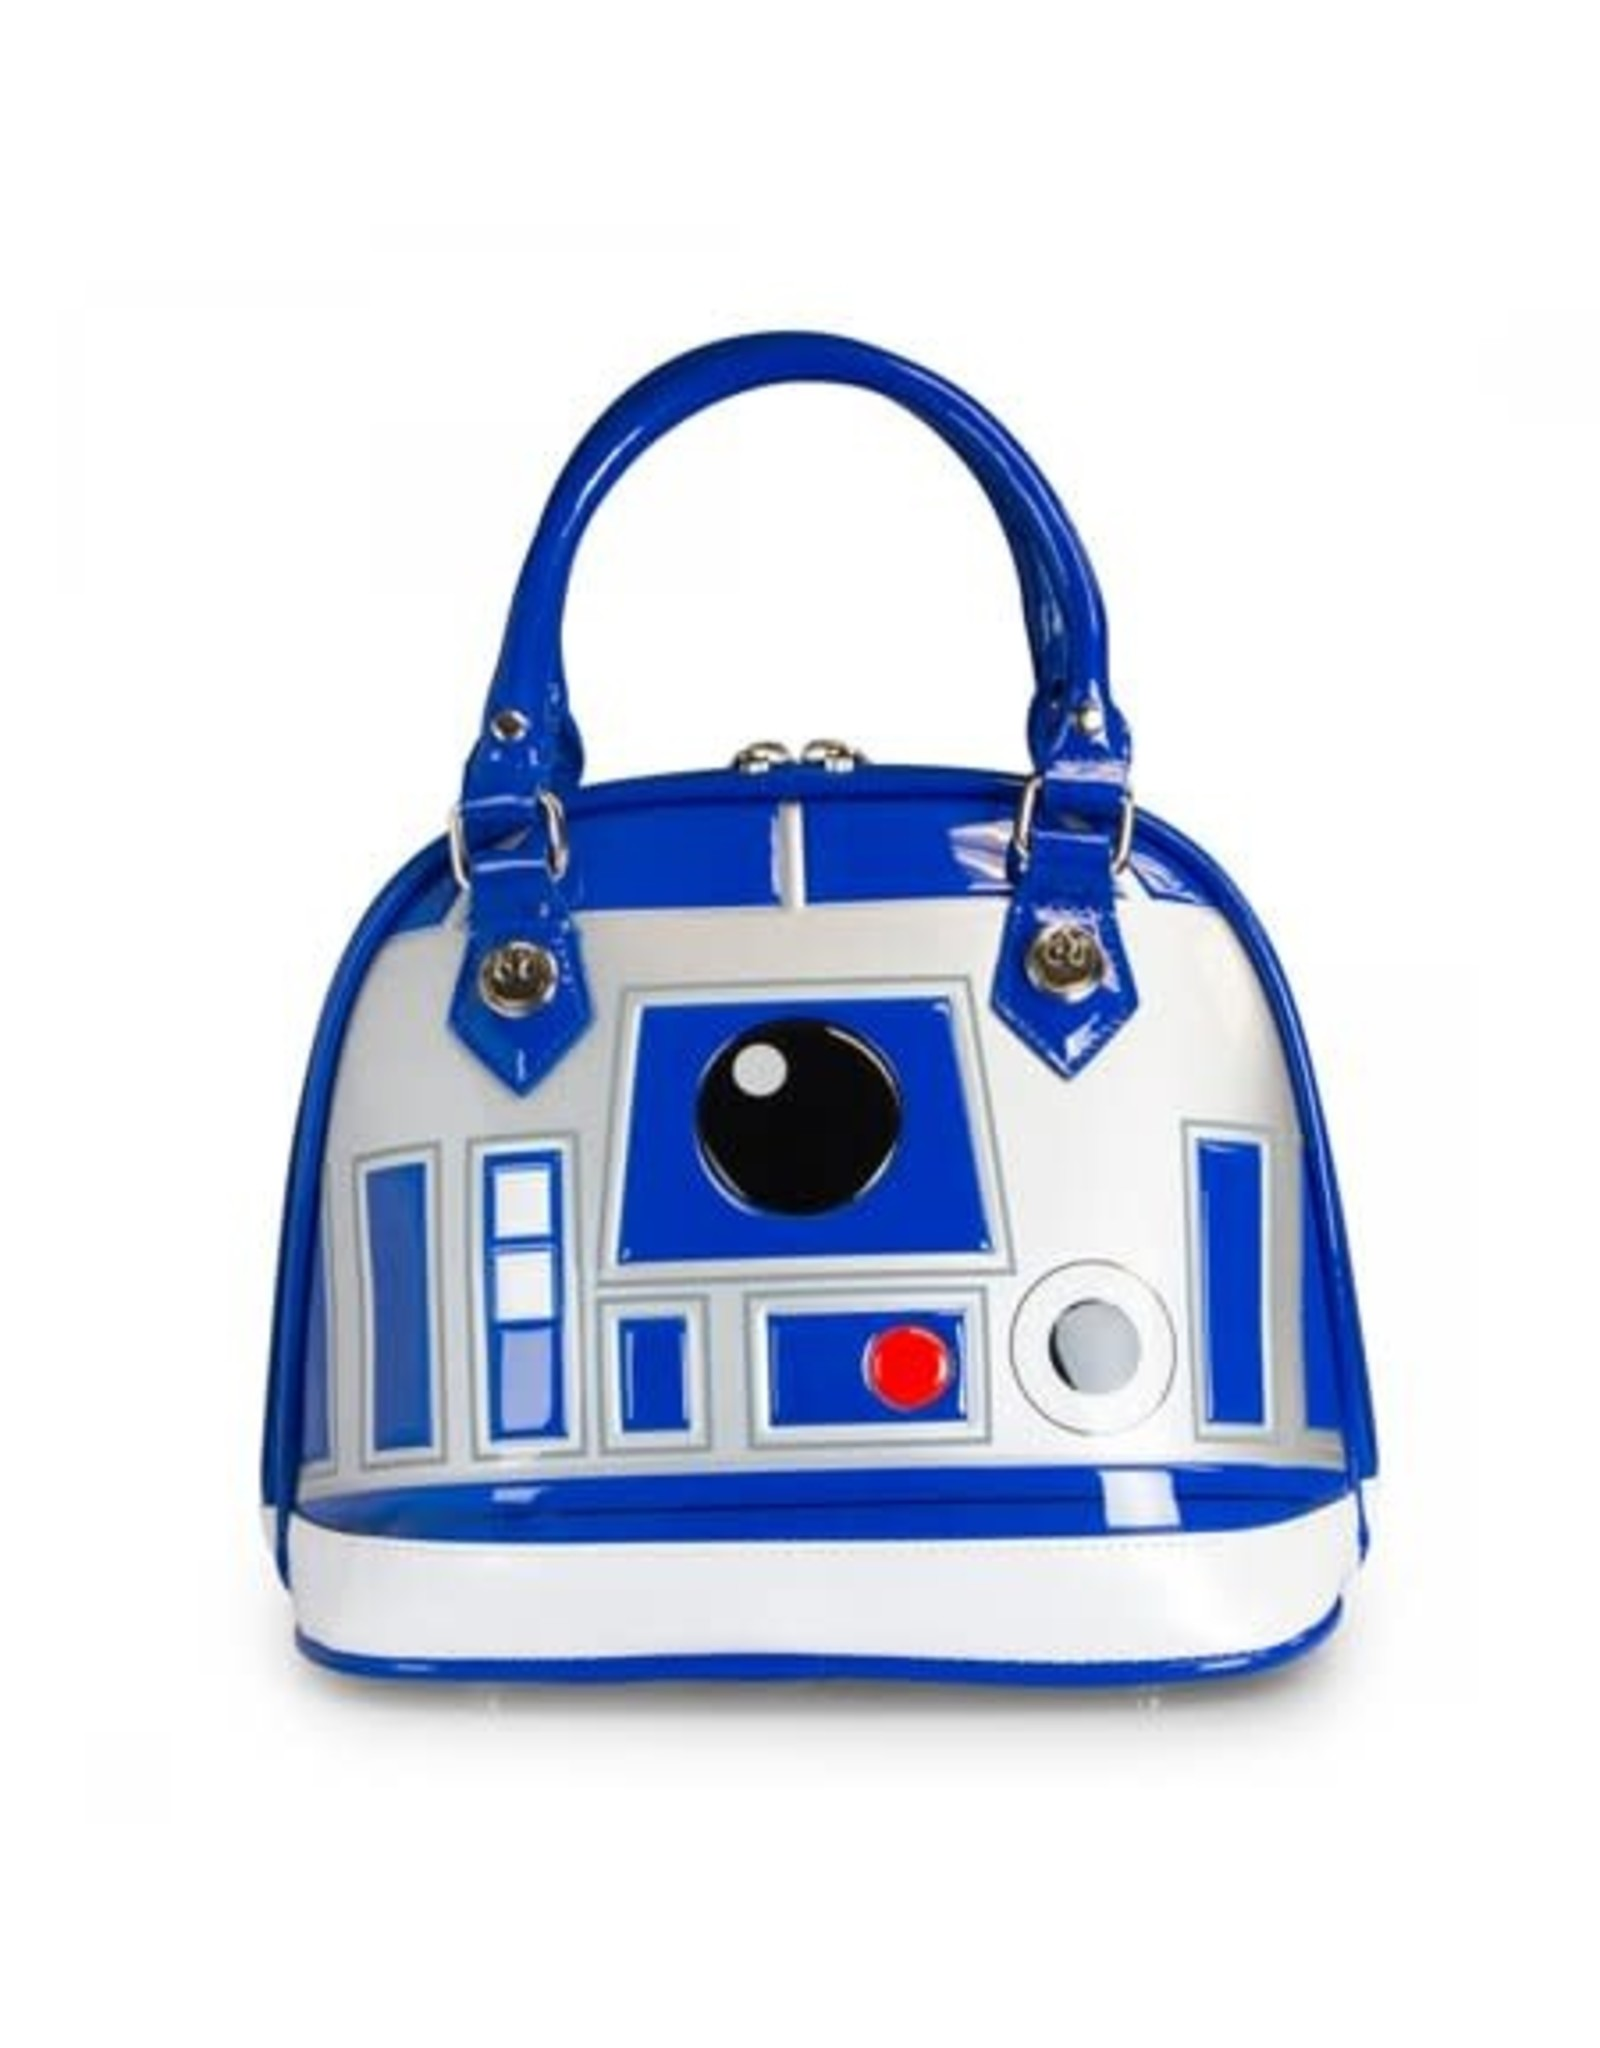 Loungefly STAR WARS Patent Mini Drone Bag - R2D2